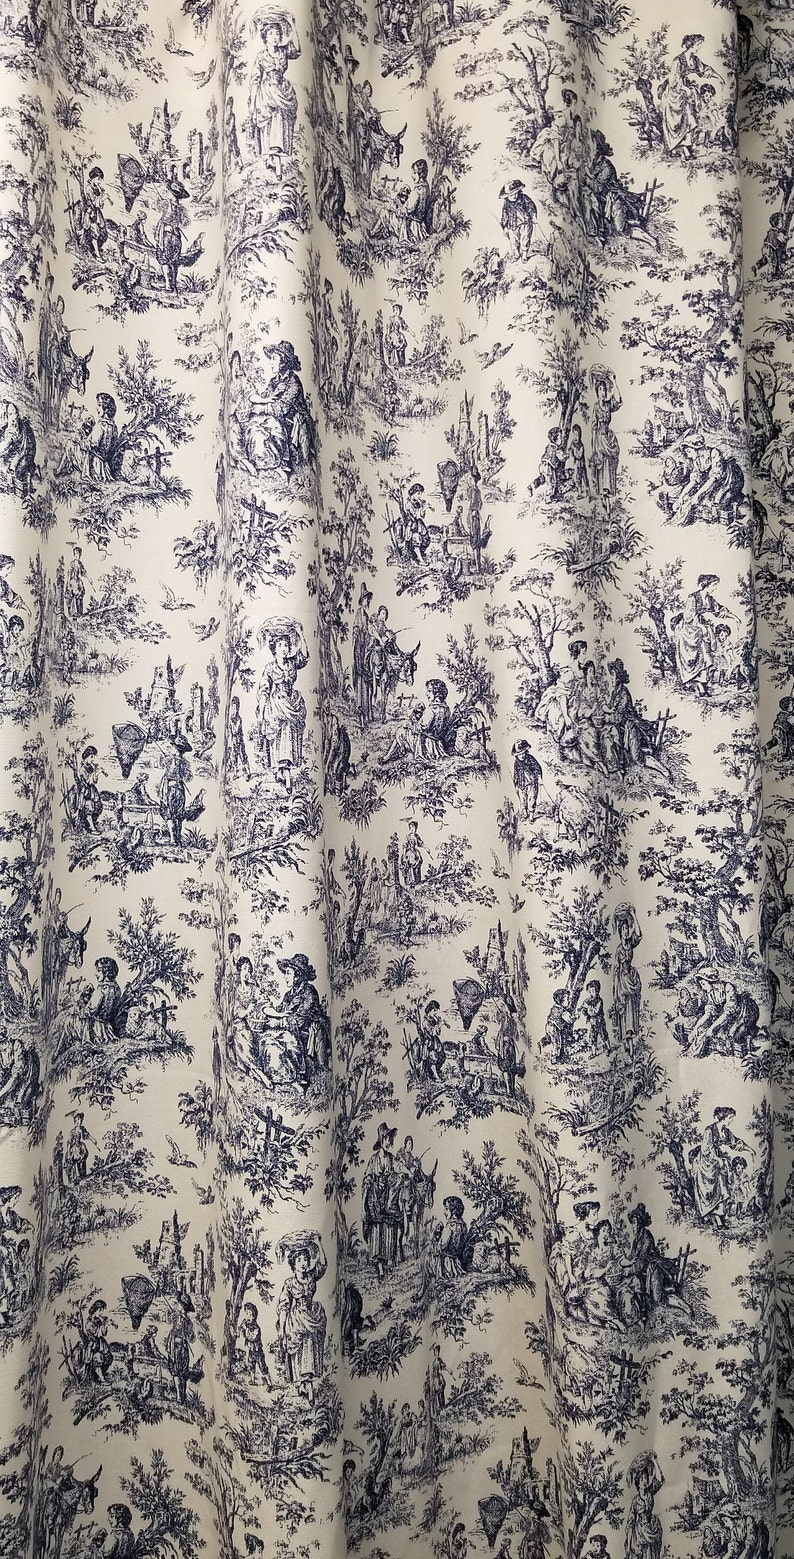 Toile Shower Curtain Navy Blue And White Cotton Print 72 84 90 96 108 Waverly Rustic Toile